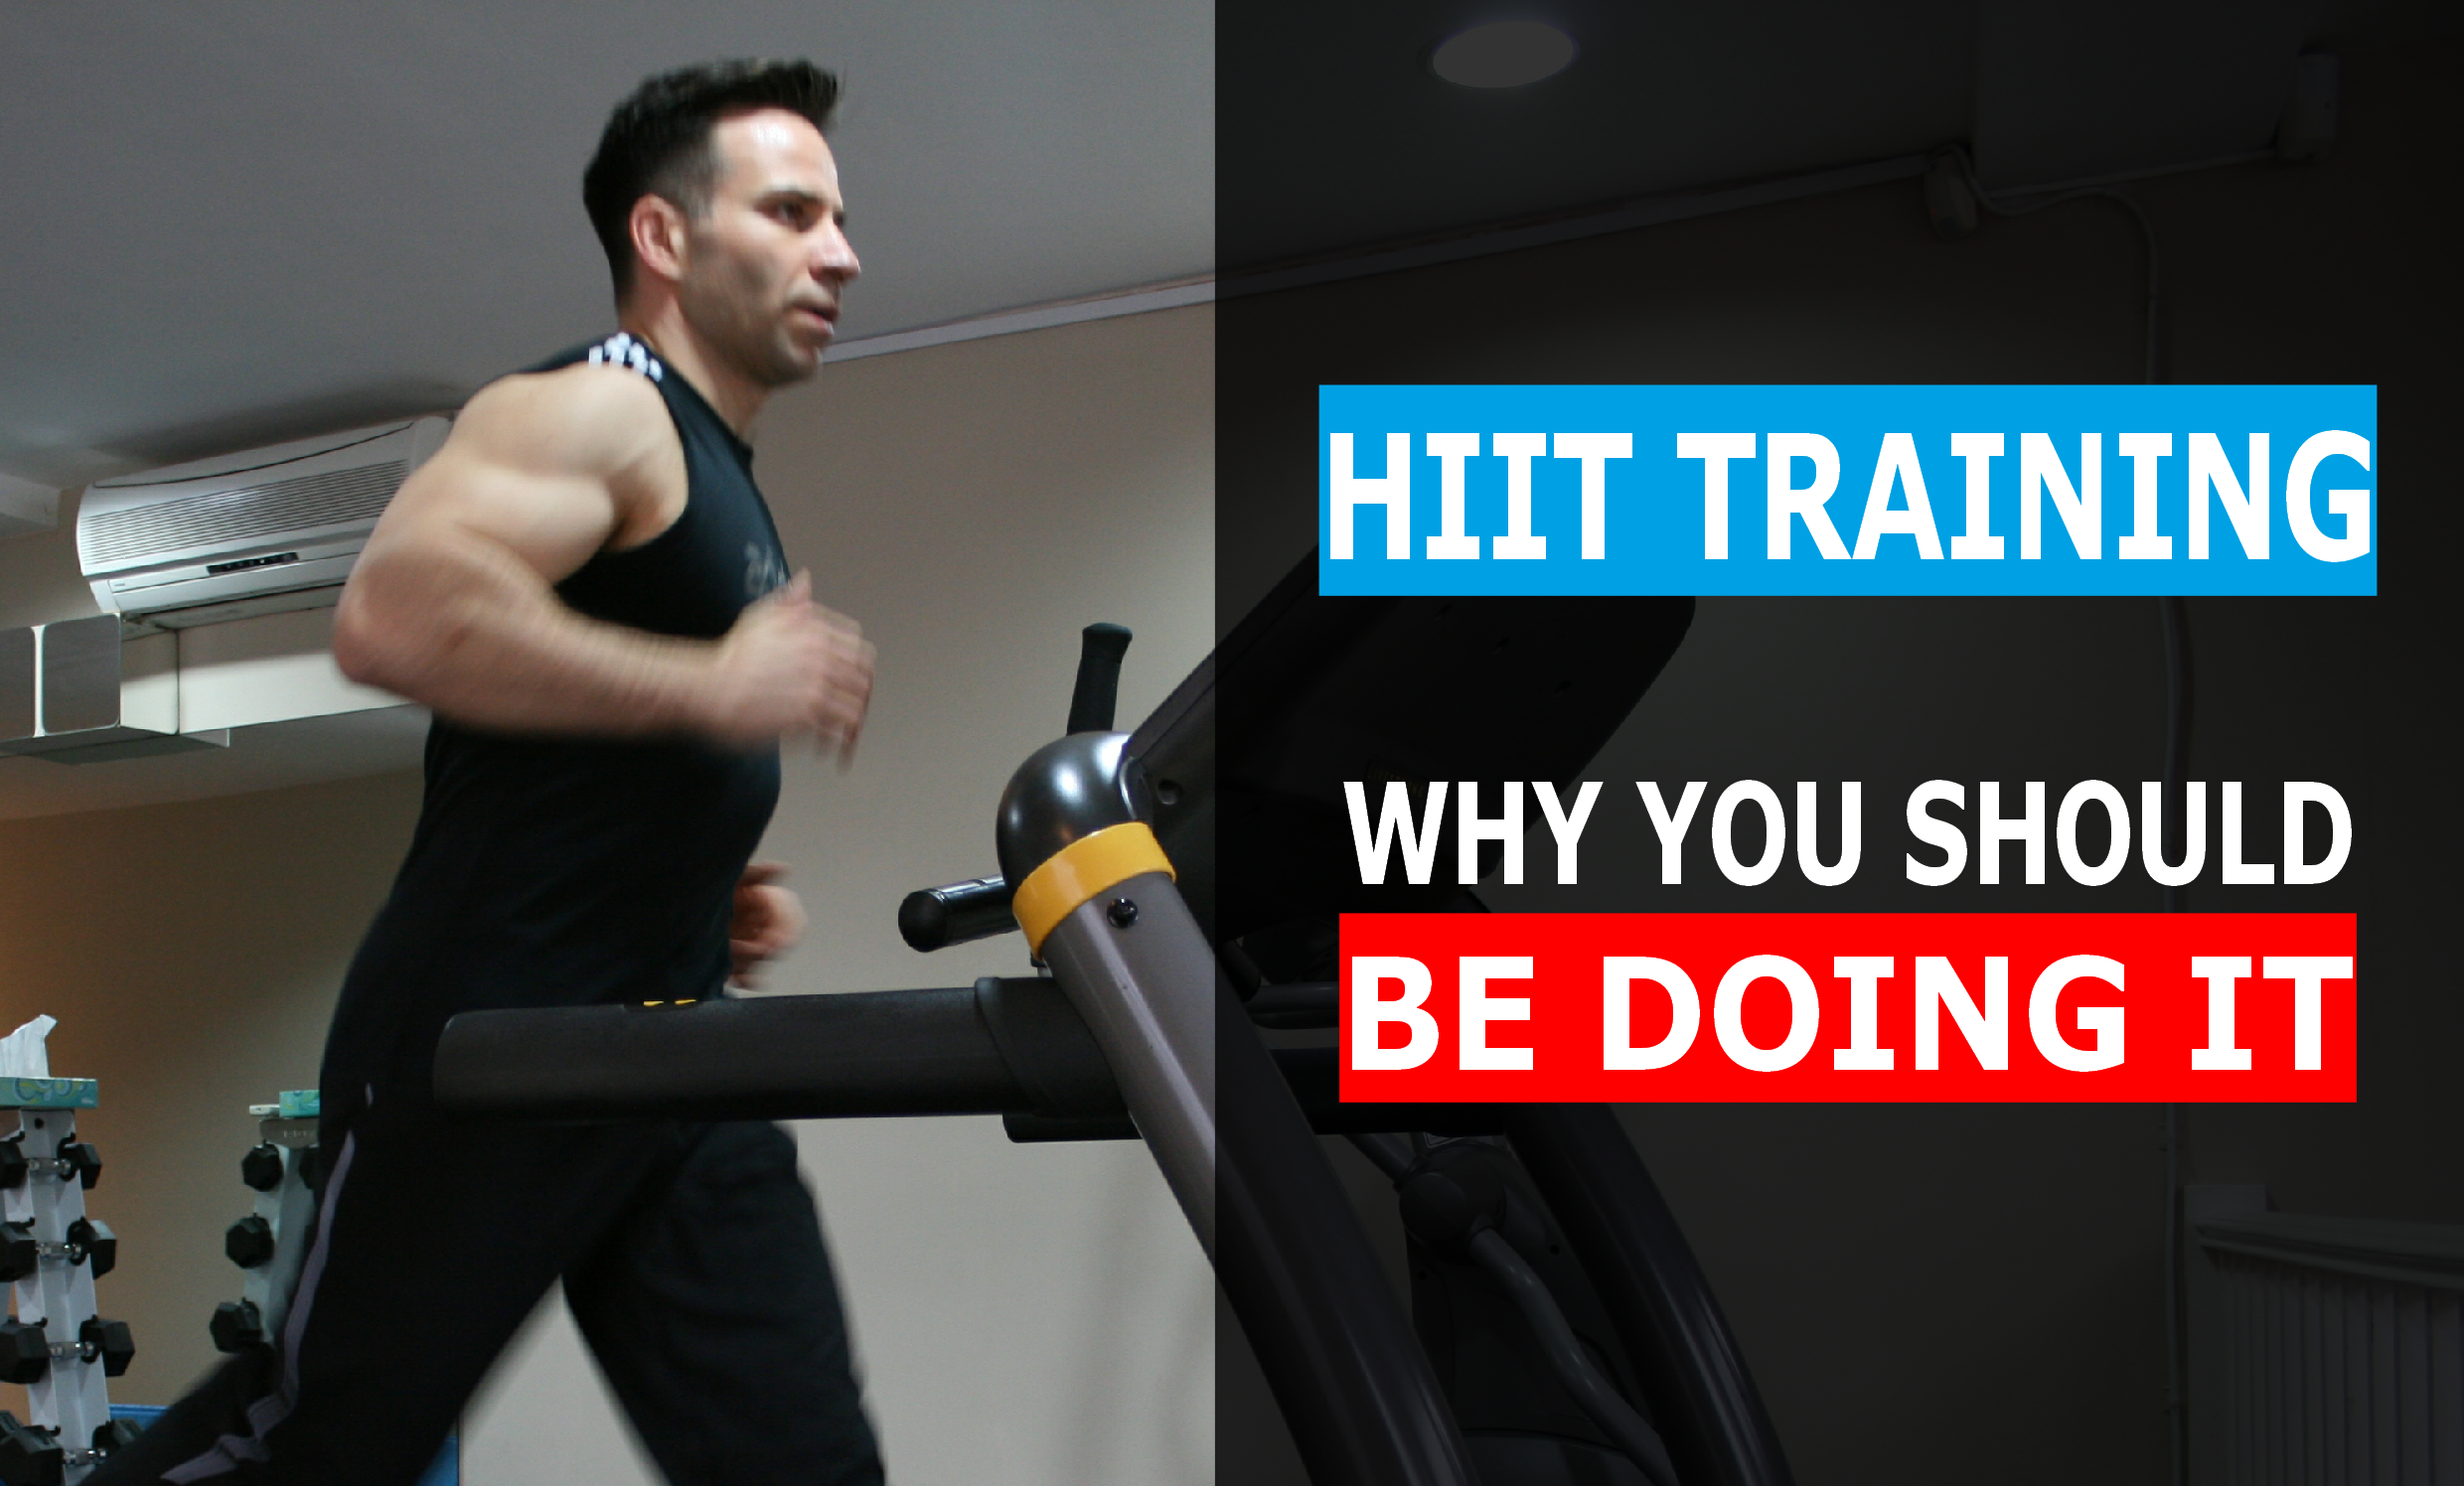 hiit-training